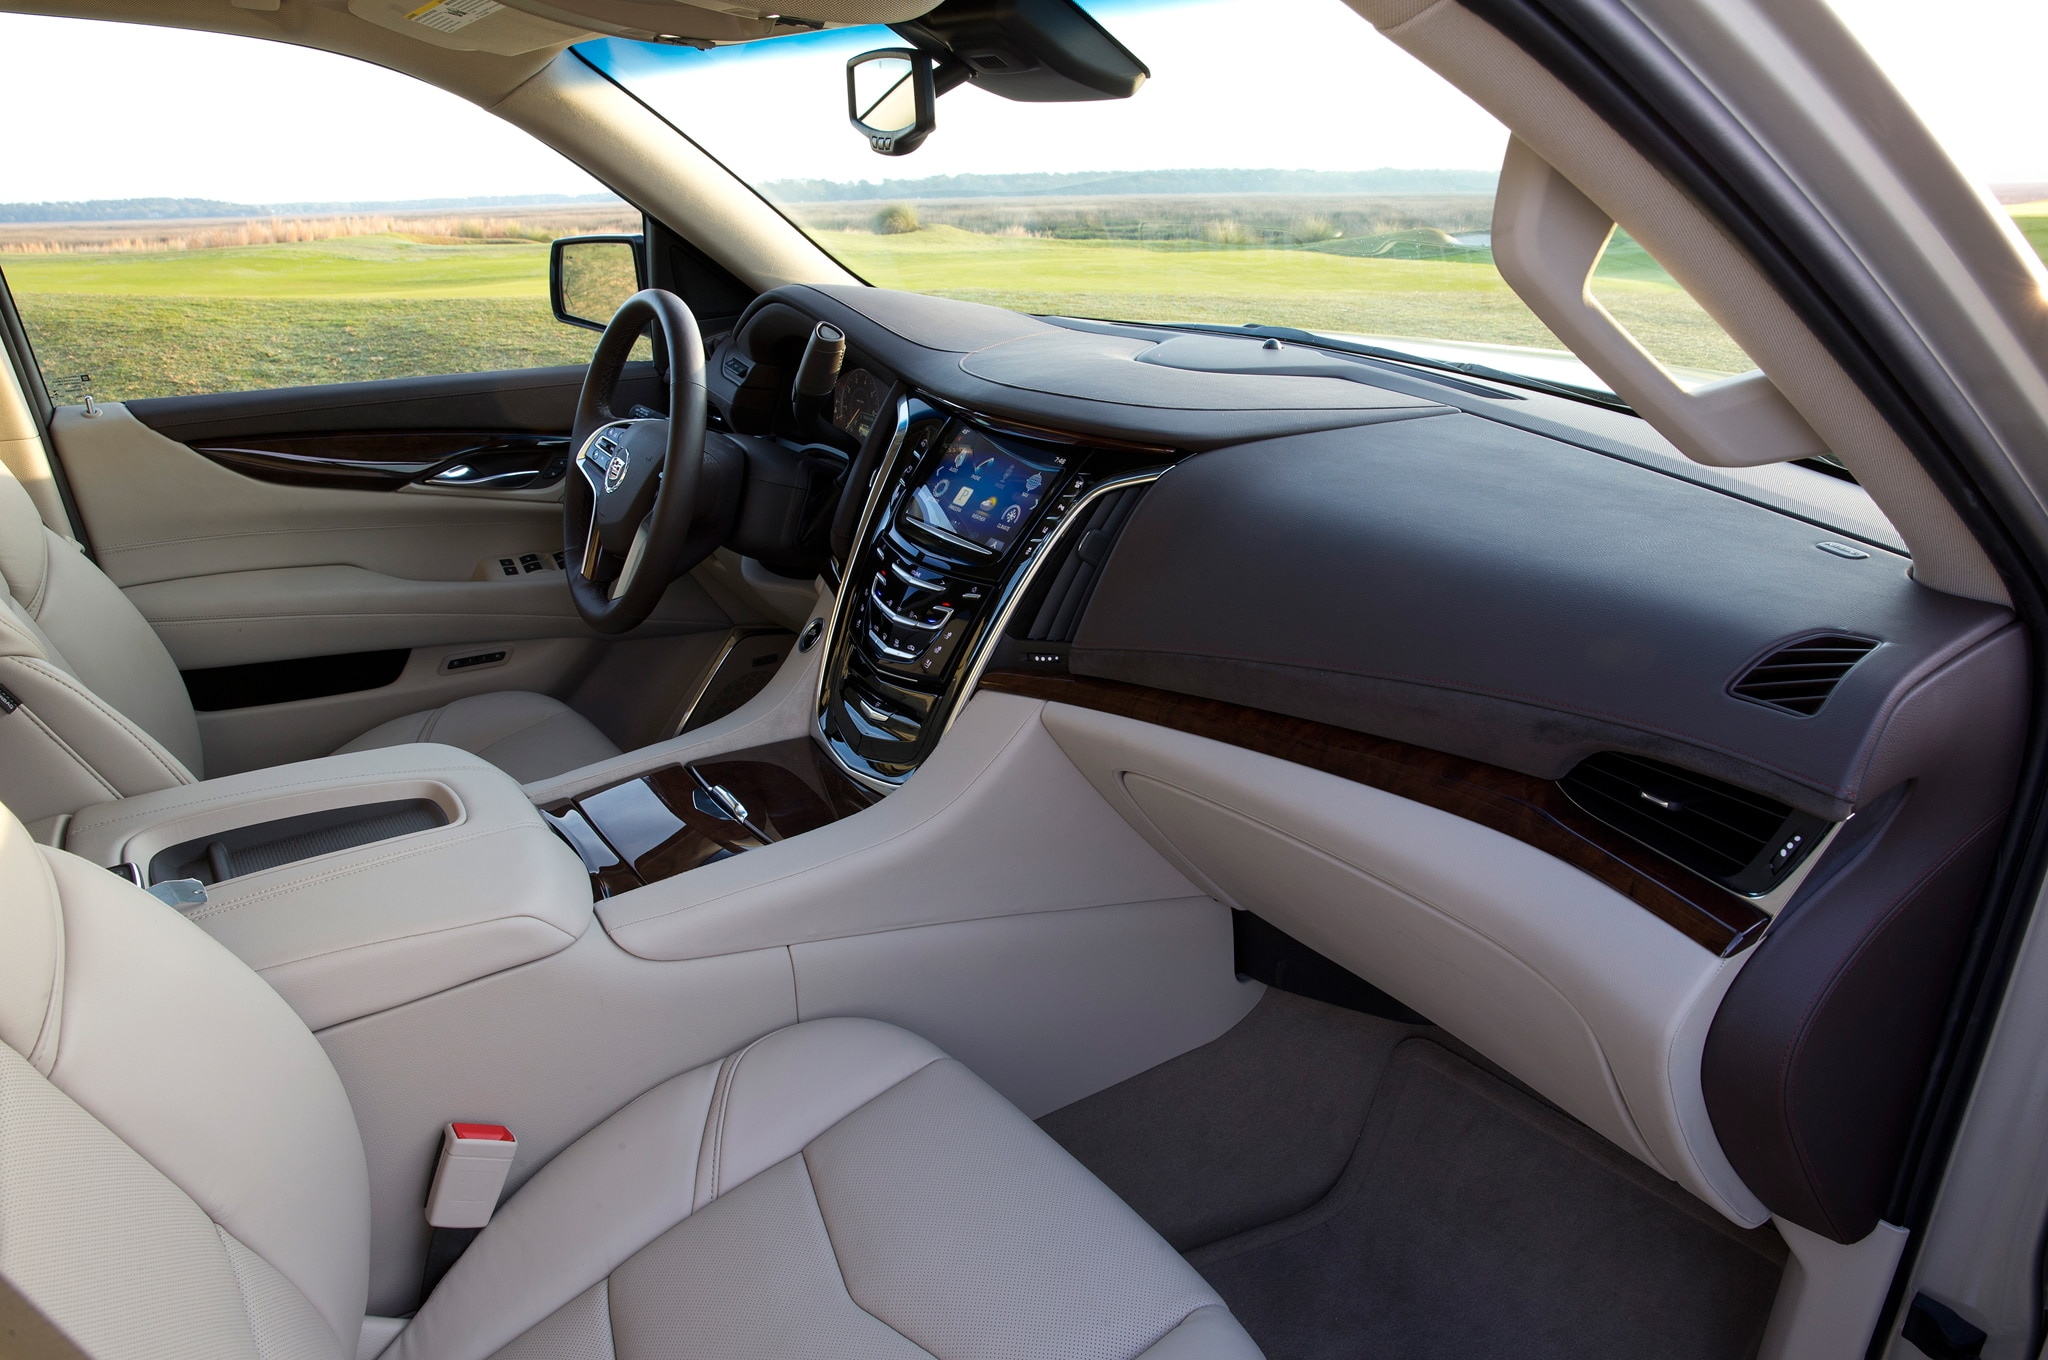 2015 Cadillac Escalade First Drive Photo & Image Gallery